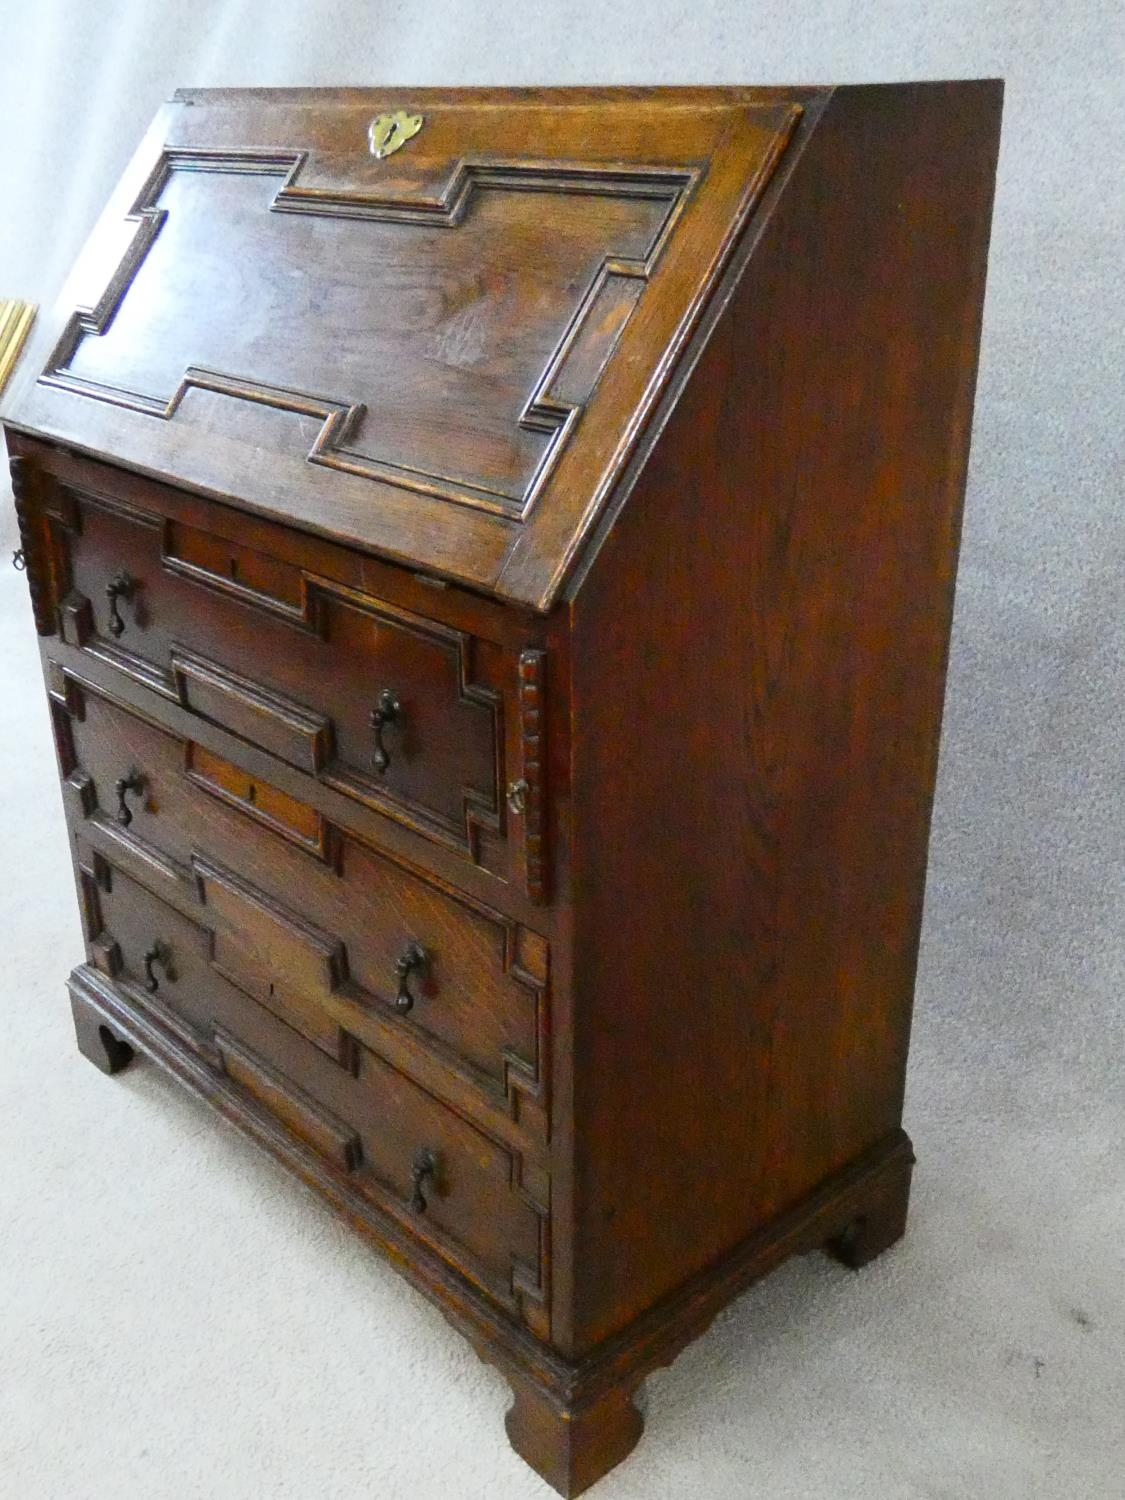 A mid century Jacobean style oak bureau with lozenge inset panels and fall front revealing fitted - Image 14 of 26